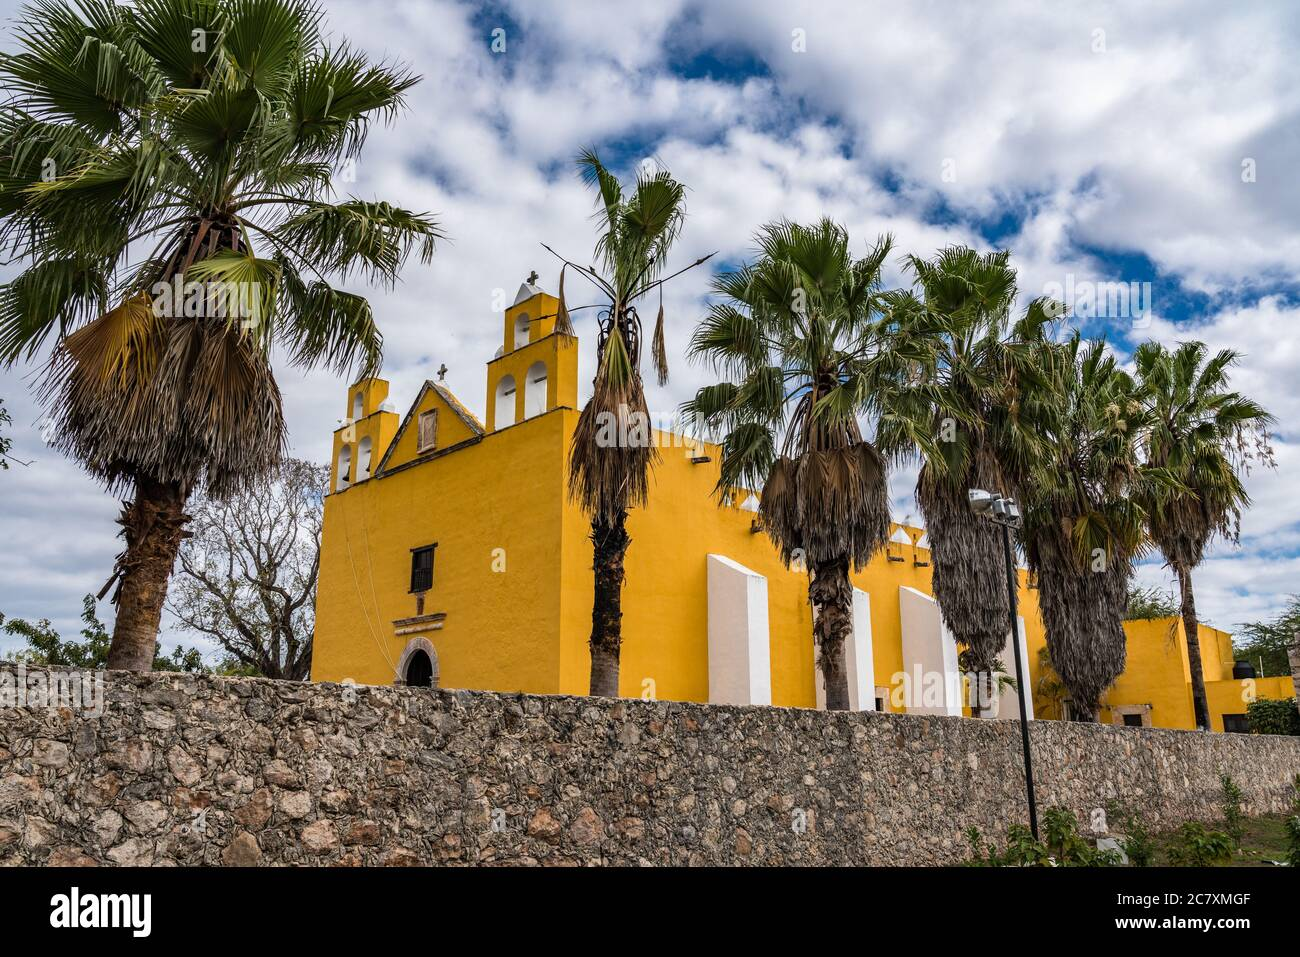 The colonial Church of St. Peter the Apostle was built in the 17th Century by the Franciscans in Cholul, Yucatan, Mexico. Stock Photo